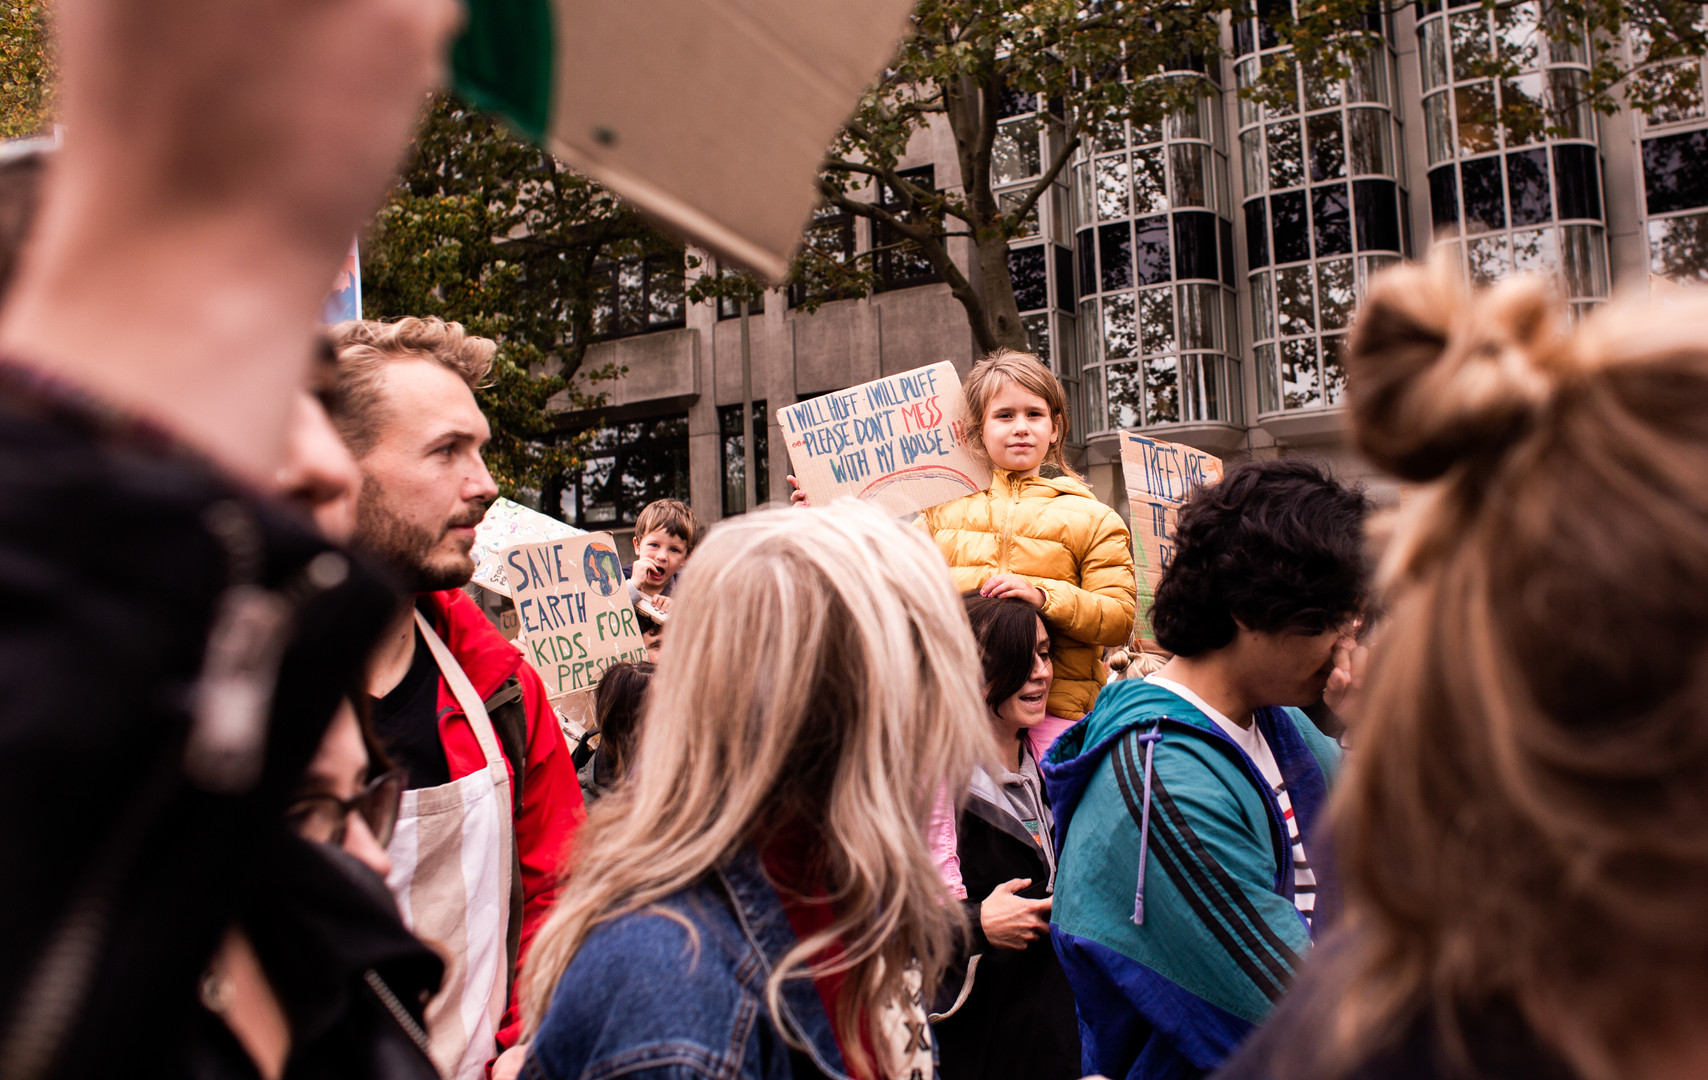 A little girl on the shoulders of her mother at the first general climate strike in Den Haag, The Netherlands, on September 27, 2019. Building on the youth climate strikes that began almost a year ago, an estimated 35,000 people of all ages gathered to demand change in Dutch and international climate policy. The strike was a part of the largest international climate mobilization in history.